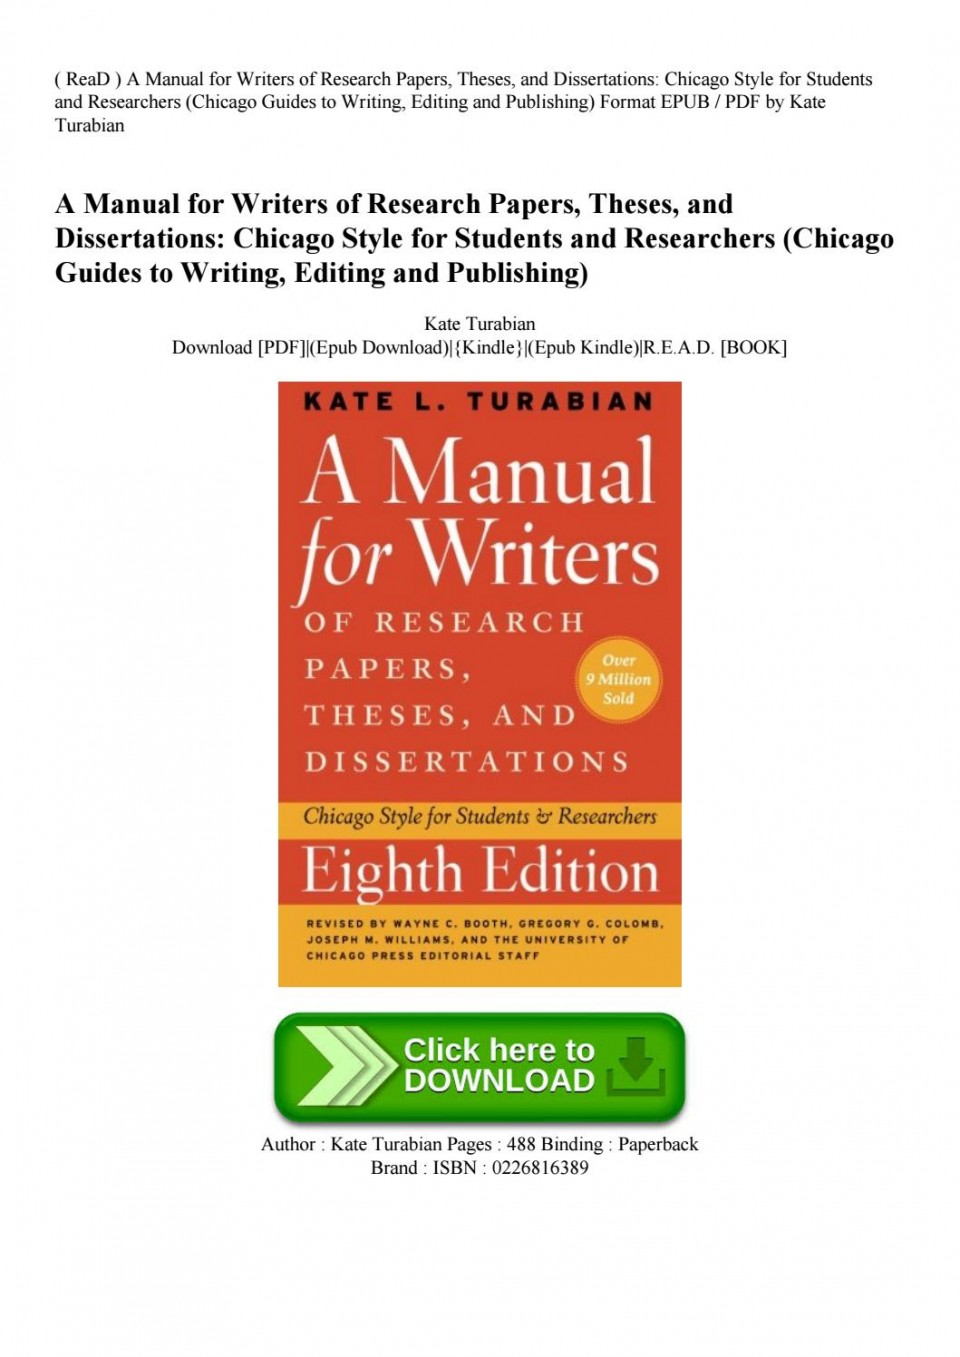 010 Research Paper Manual For Writers Of Papers Theses And Dissertations Page 1 Sensational A Ed. 8 8th Edition Ninth Pdf 960